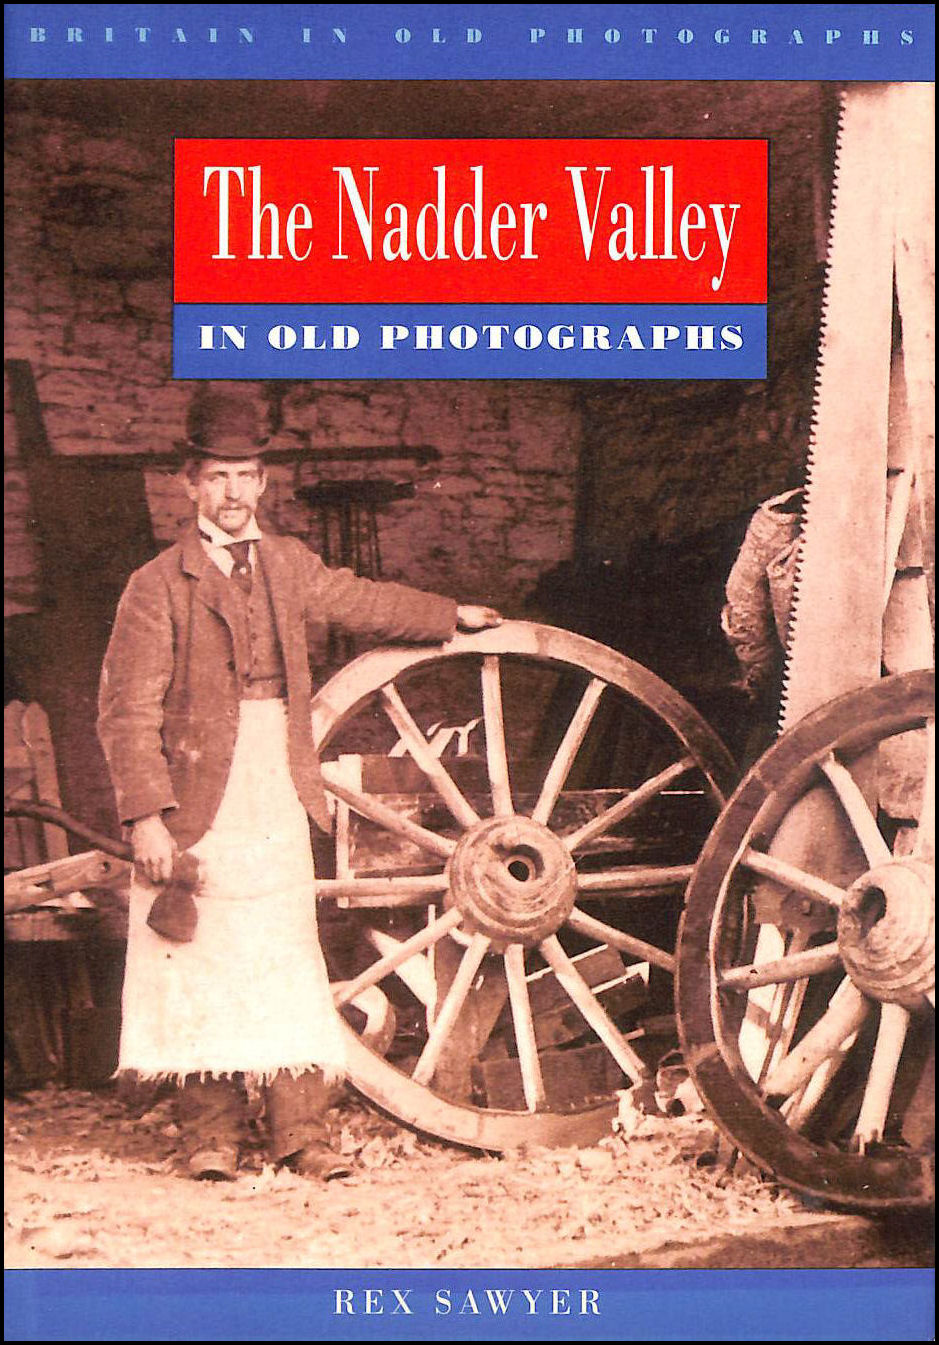 Nadder Valley in Old Photographs (Britain in Old Photographs), Sawyer, Rex